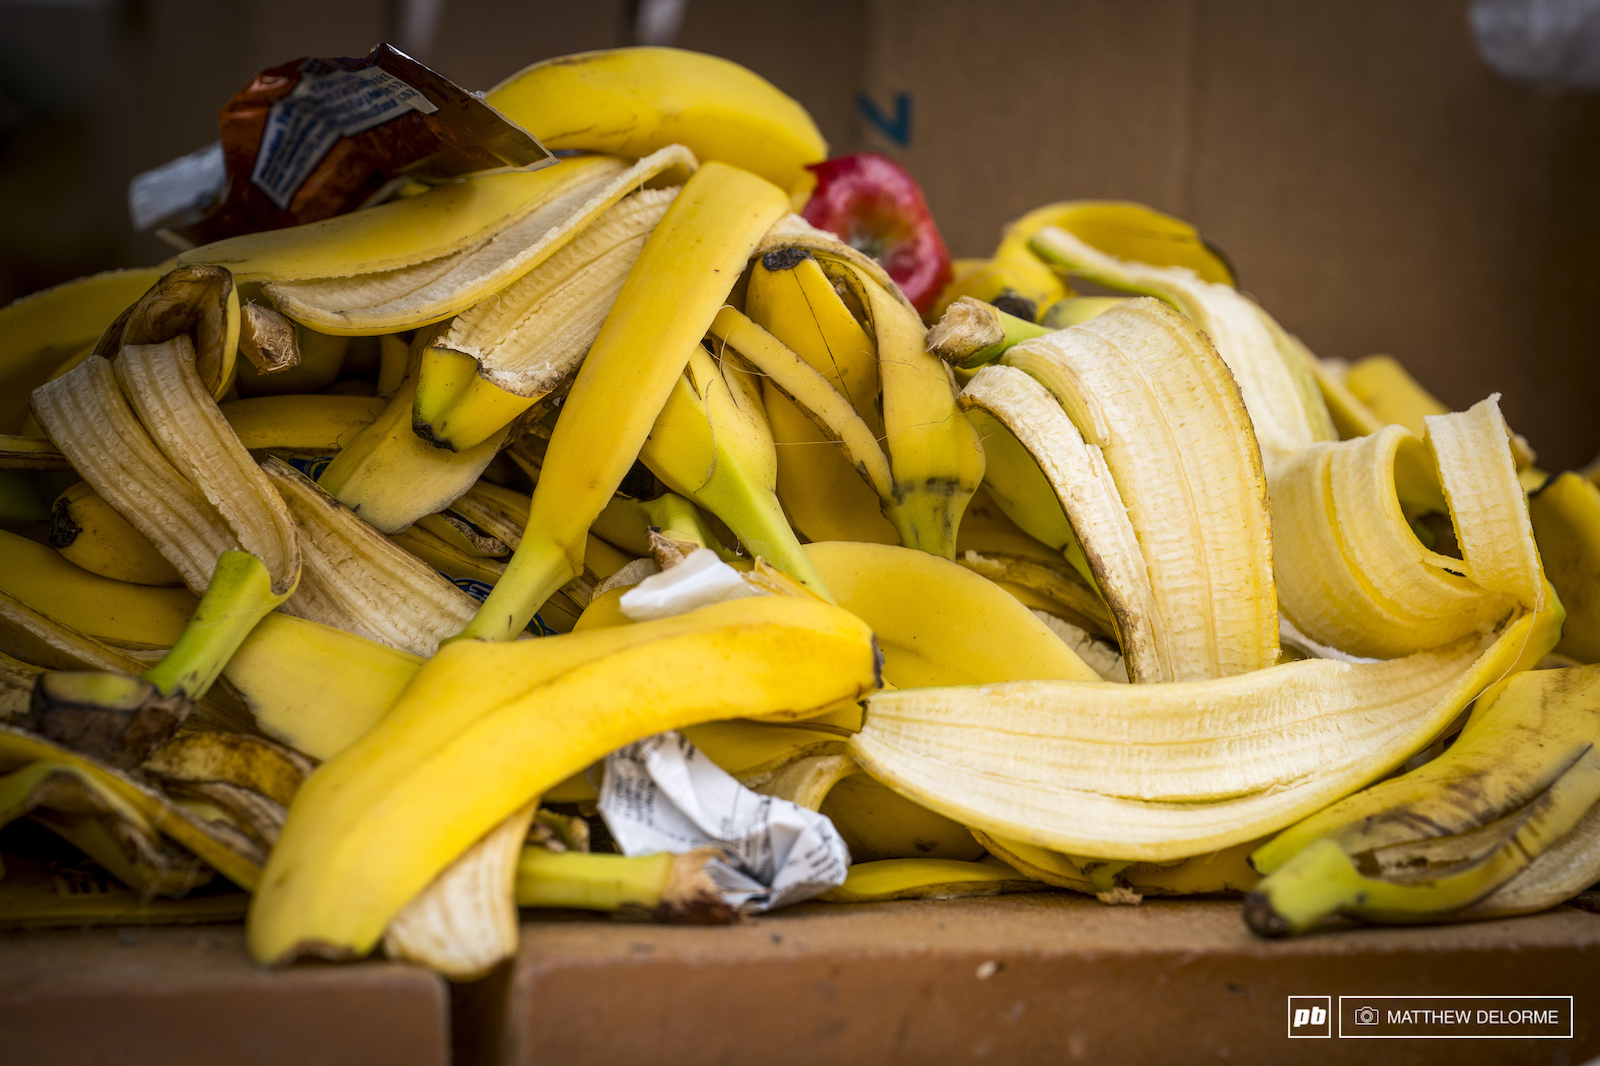 It takes this many Bananas to keep the rest of the field fueled.